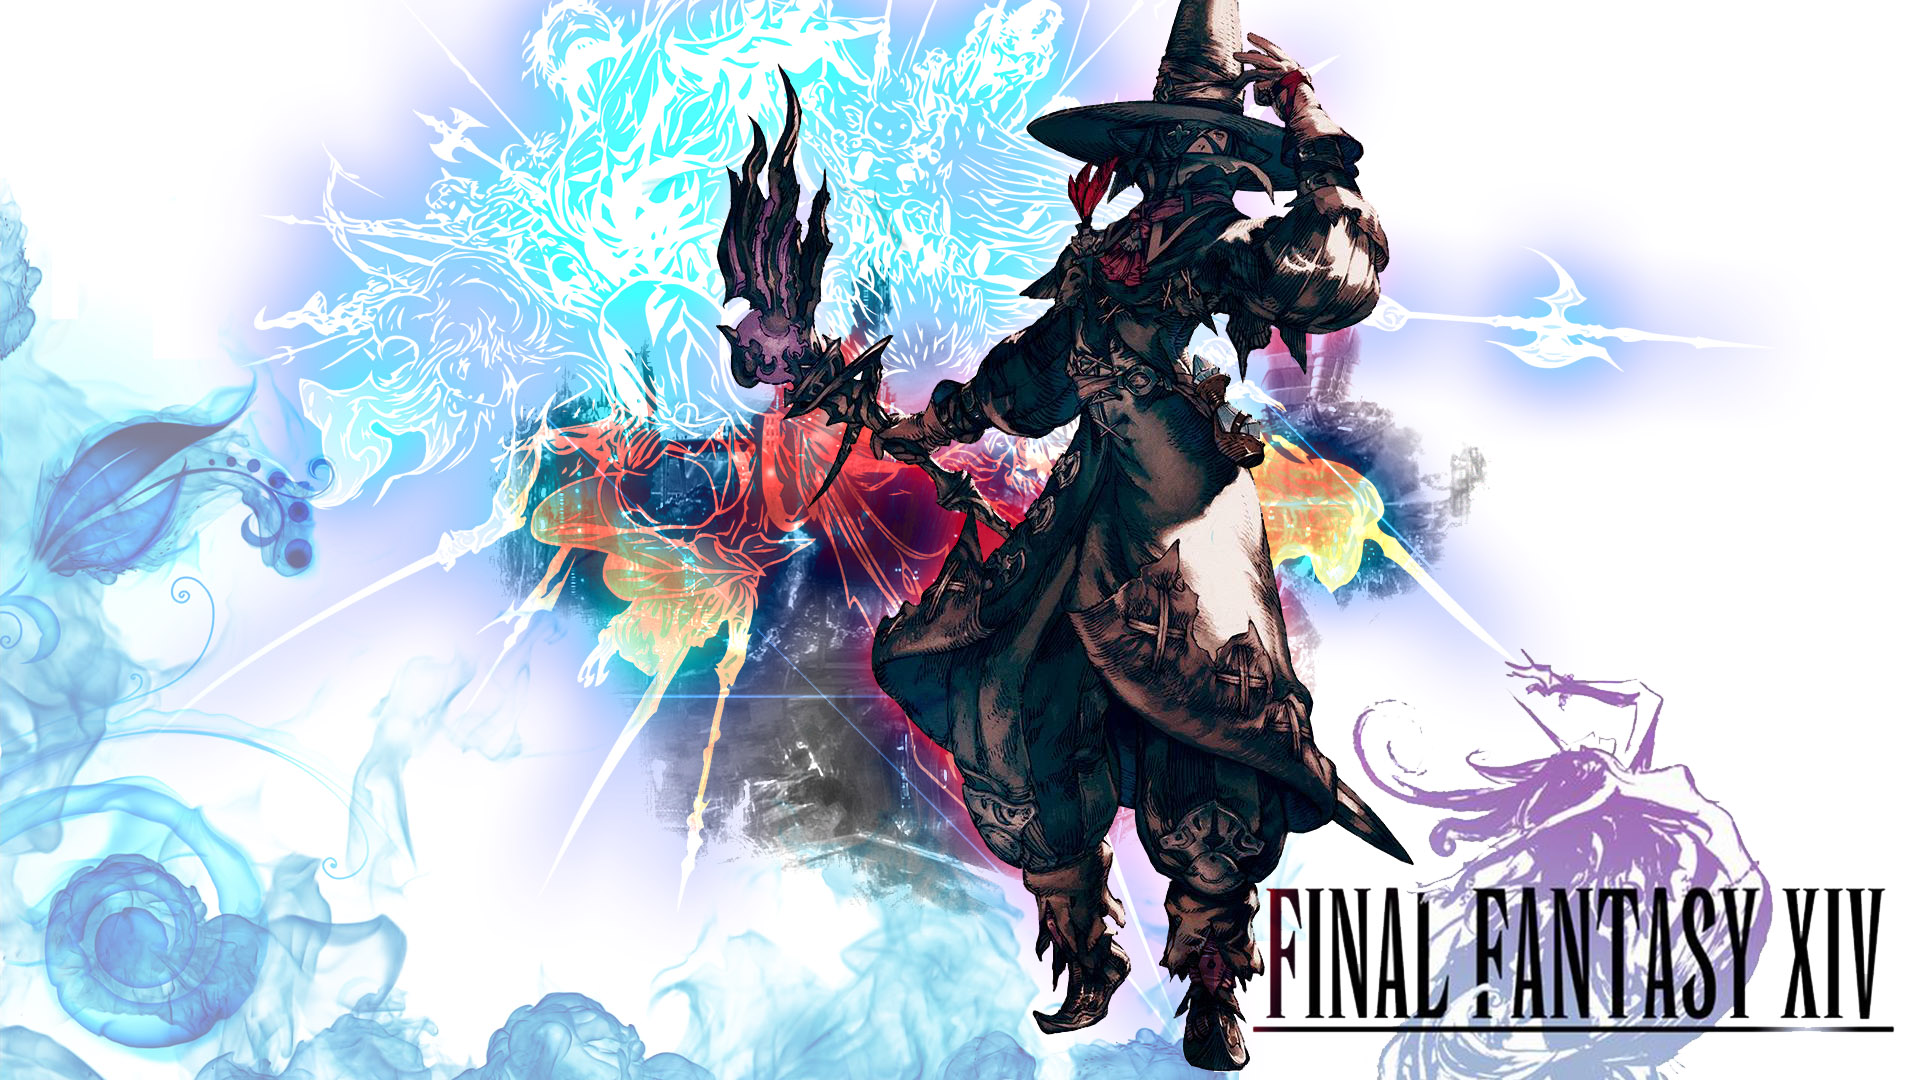 Final Fantasy Xiv Wallpaper By Majinkhan On Deviantart